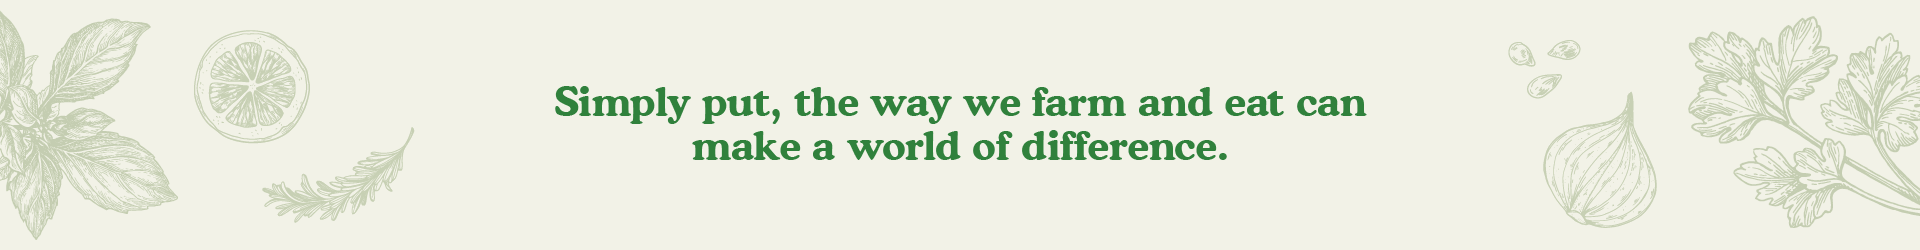 The way we farm and eat can make a world of difference